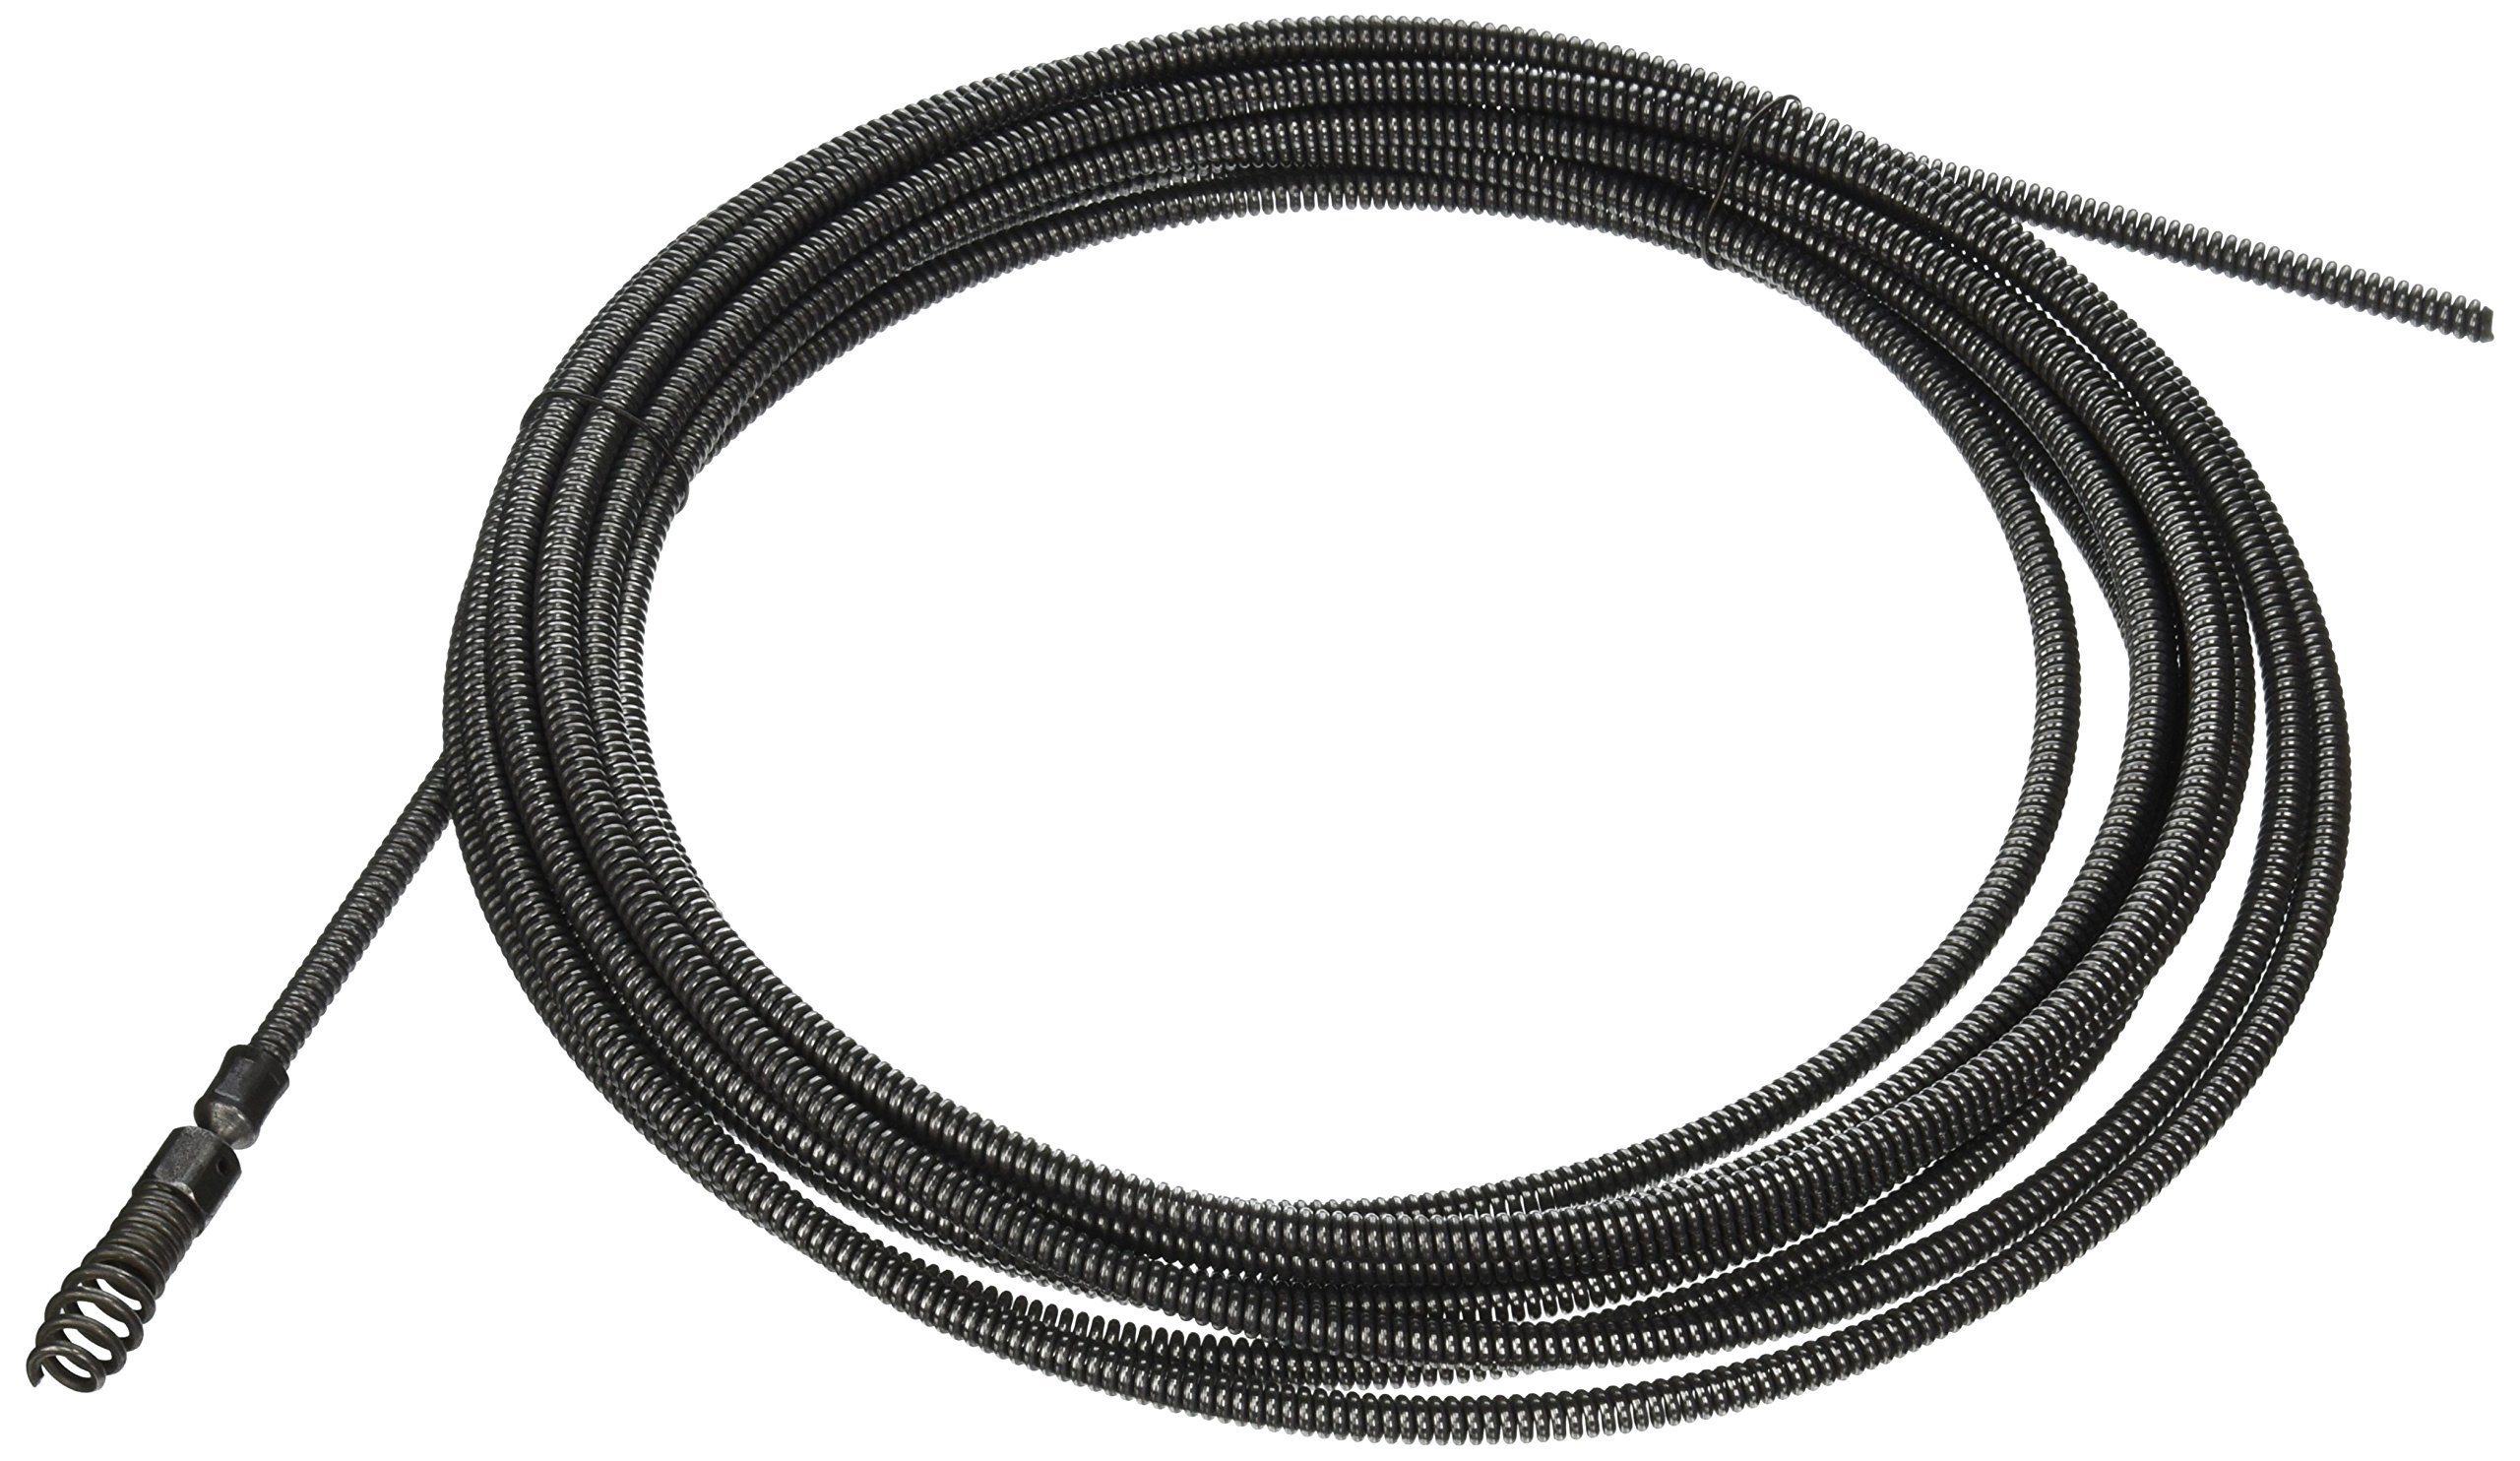 Ridgid 62235 C-2 5/16'' x 25' Cable with Drop Head Auger by Ridgid